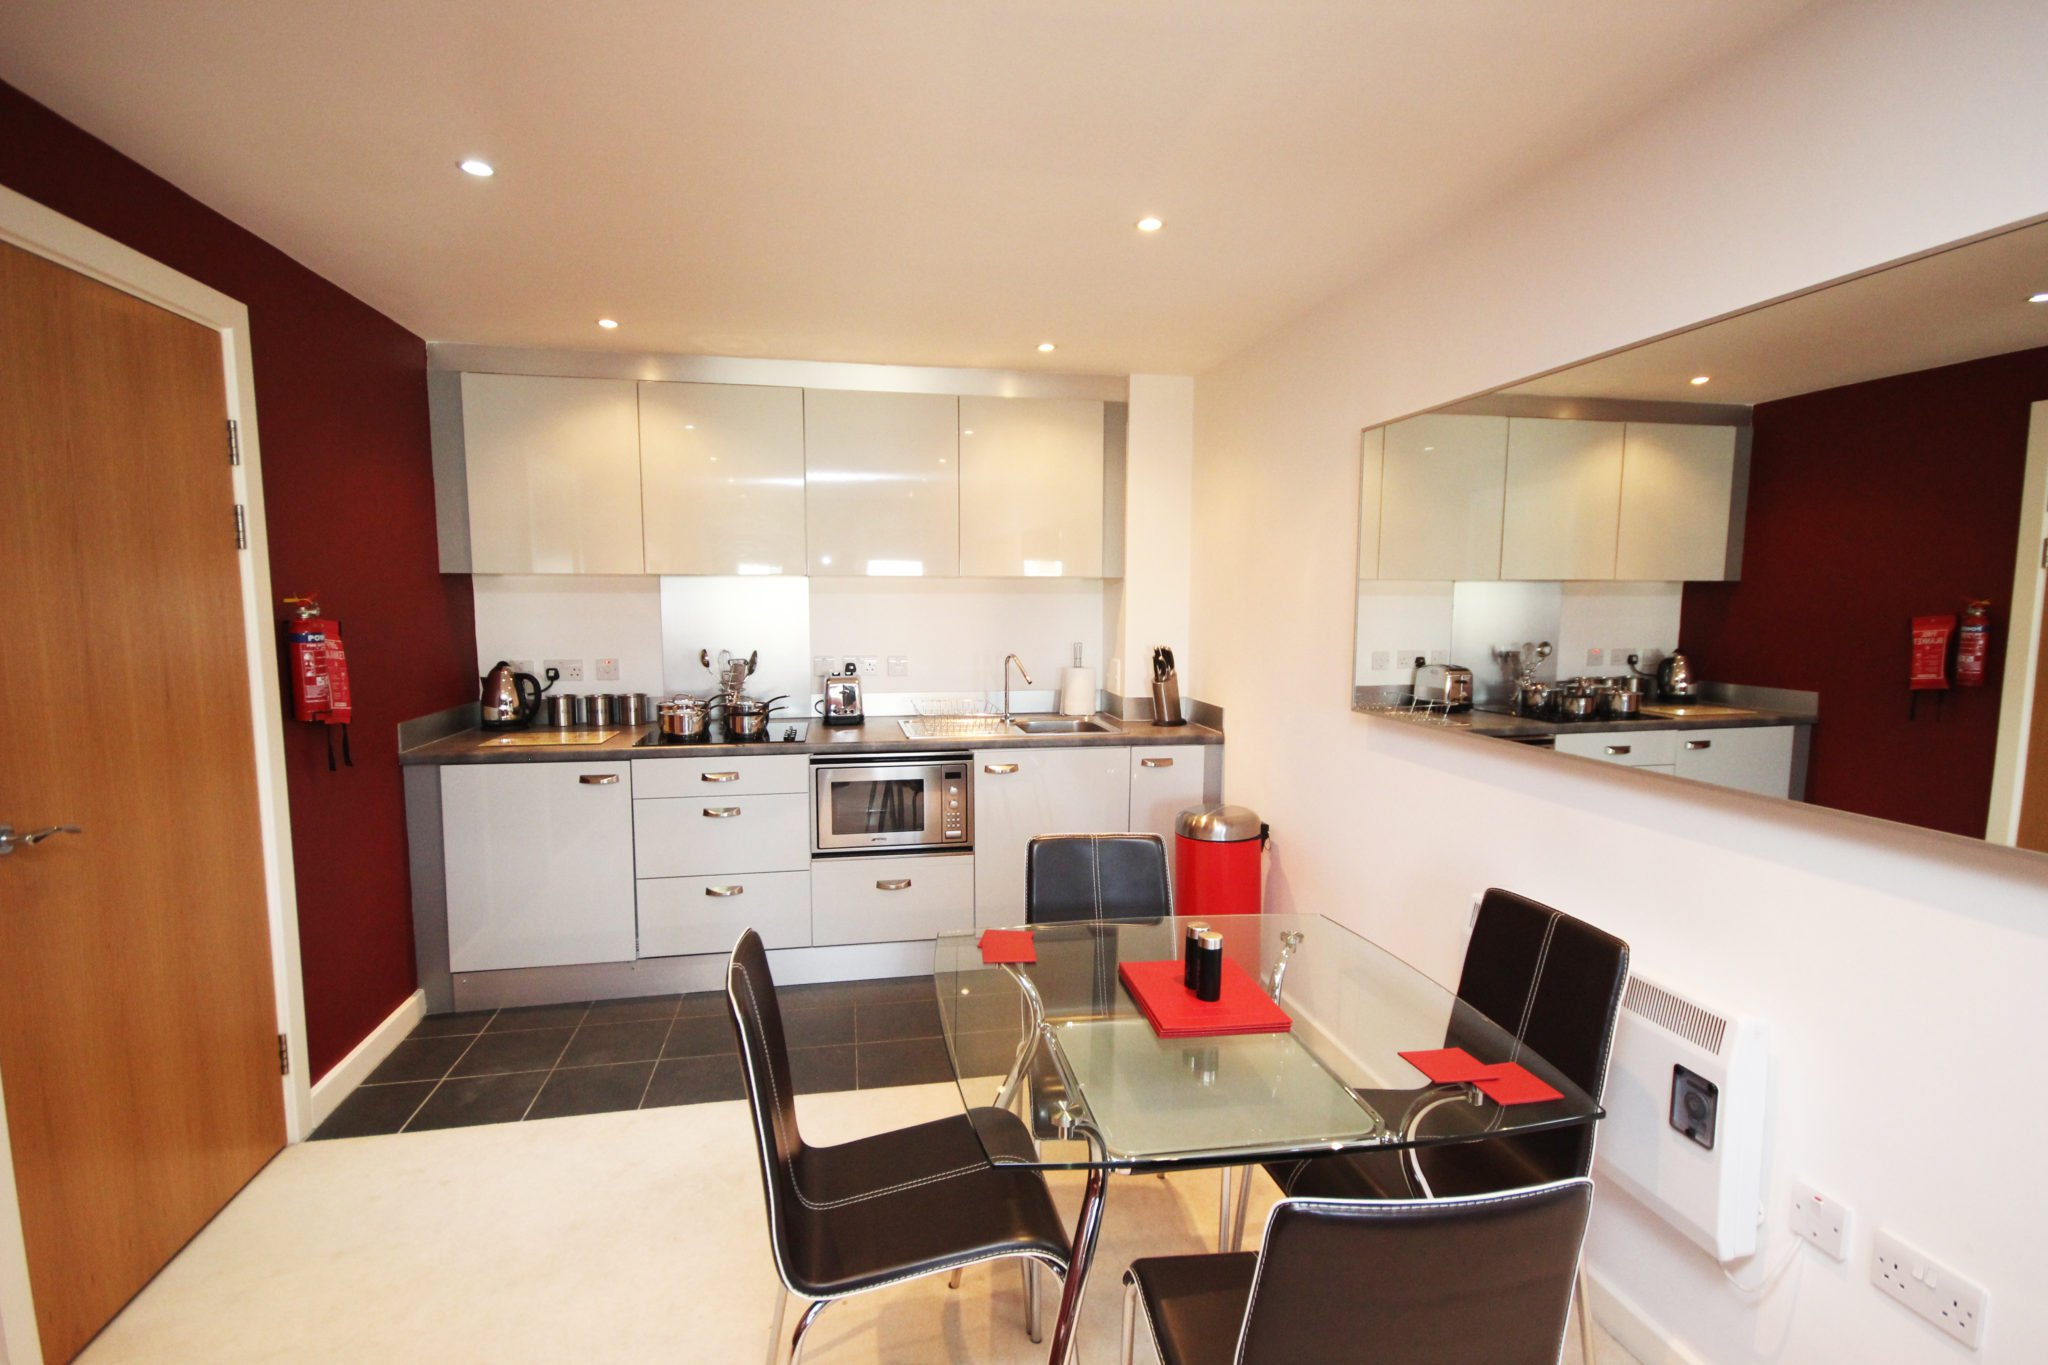 Newcastle-Corporate-Accommodation-UK-available-Now!-Book-Corporate-Serviced-Apartments-in-North-East-England-today!-Parking,Wifi,-5*-Service,-All-bills-incl-|-Urban-Stay